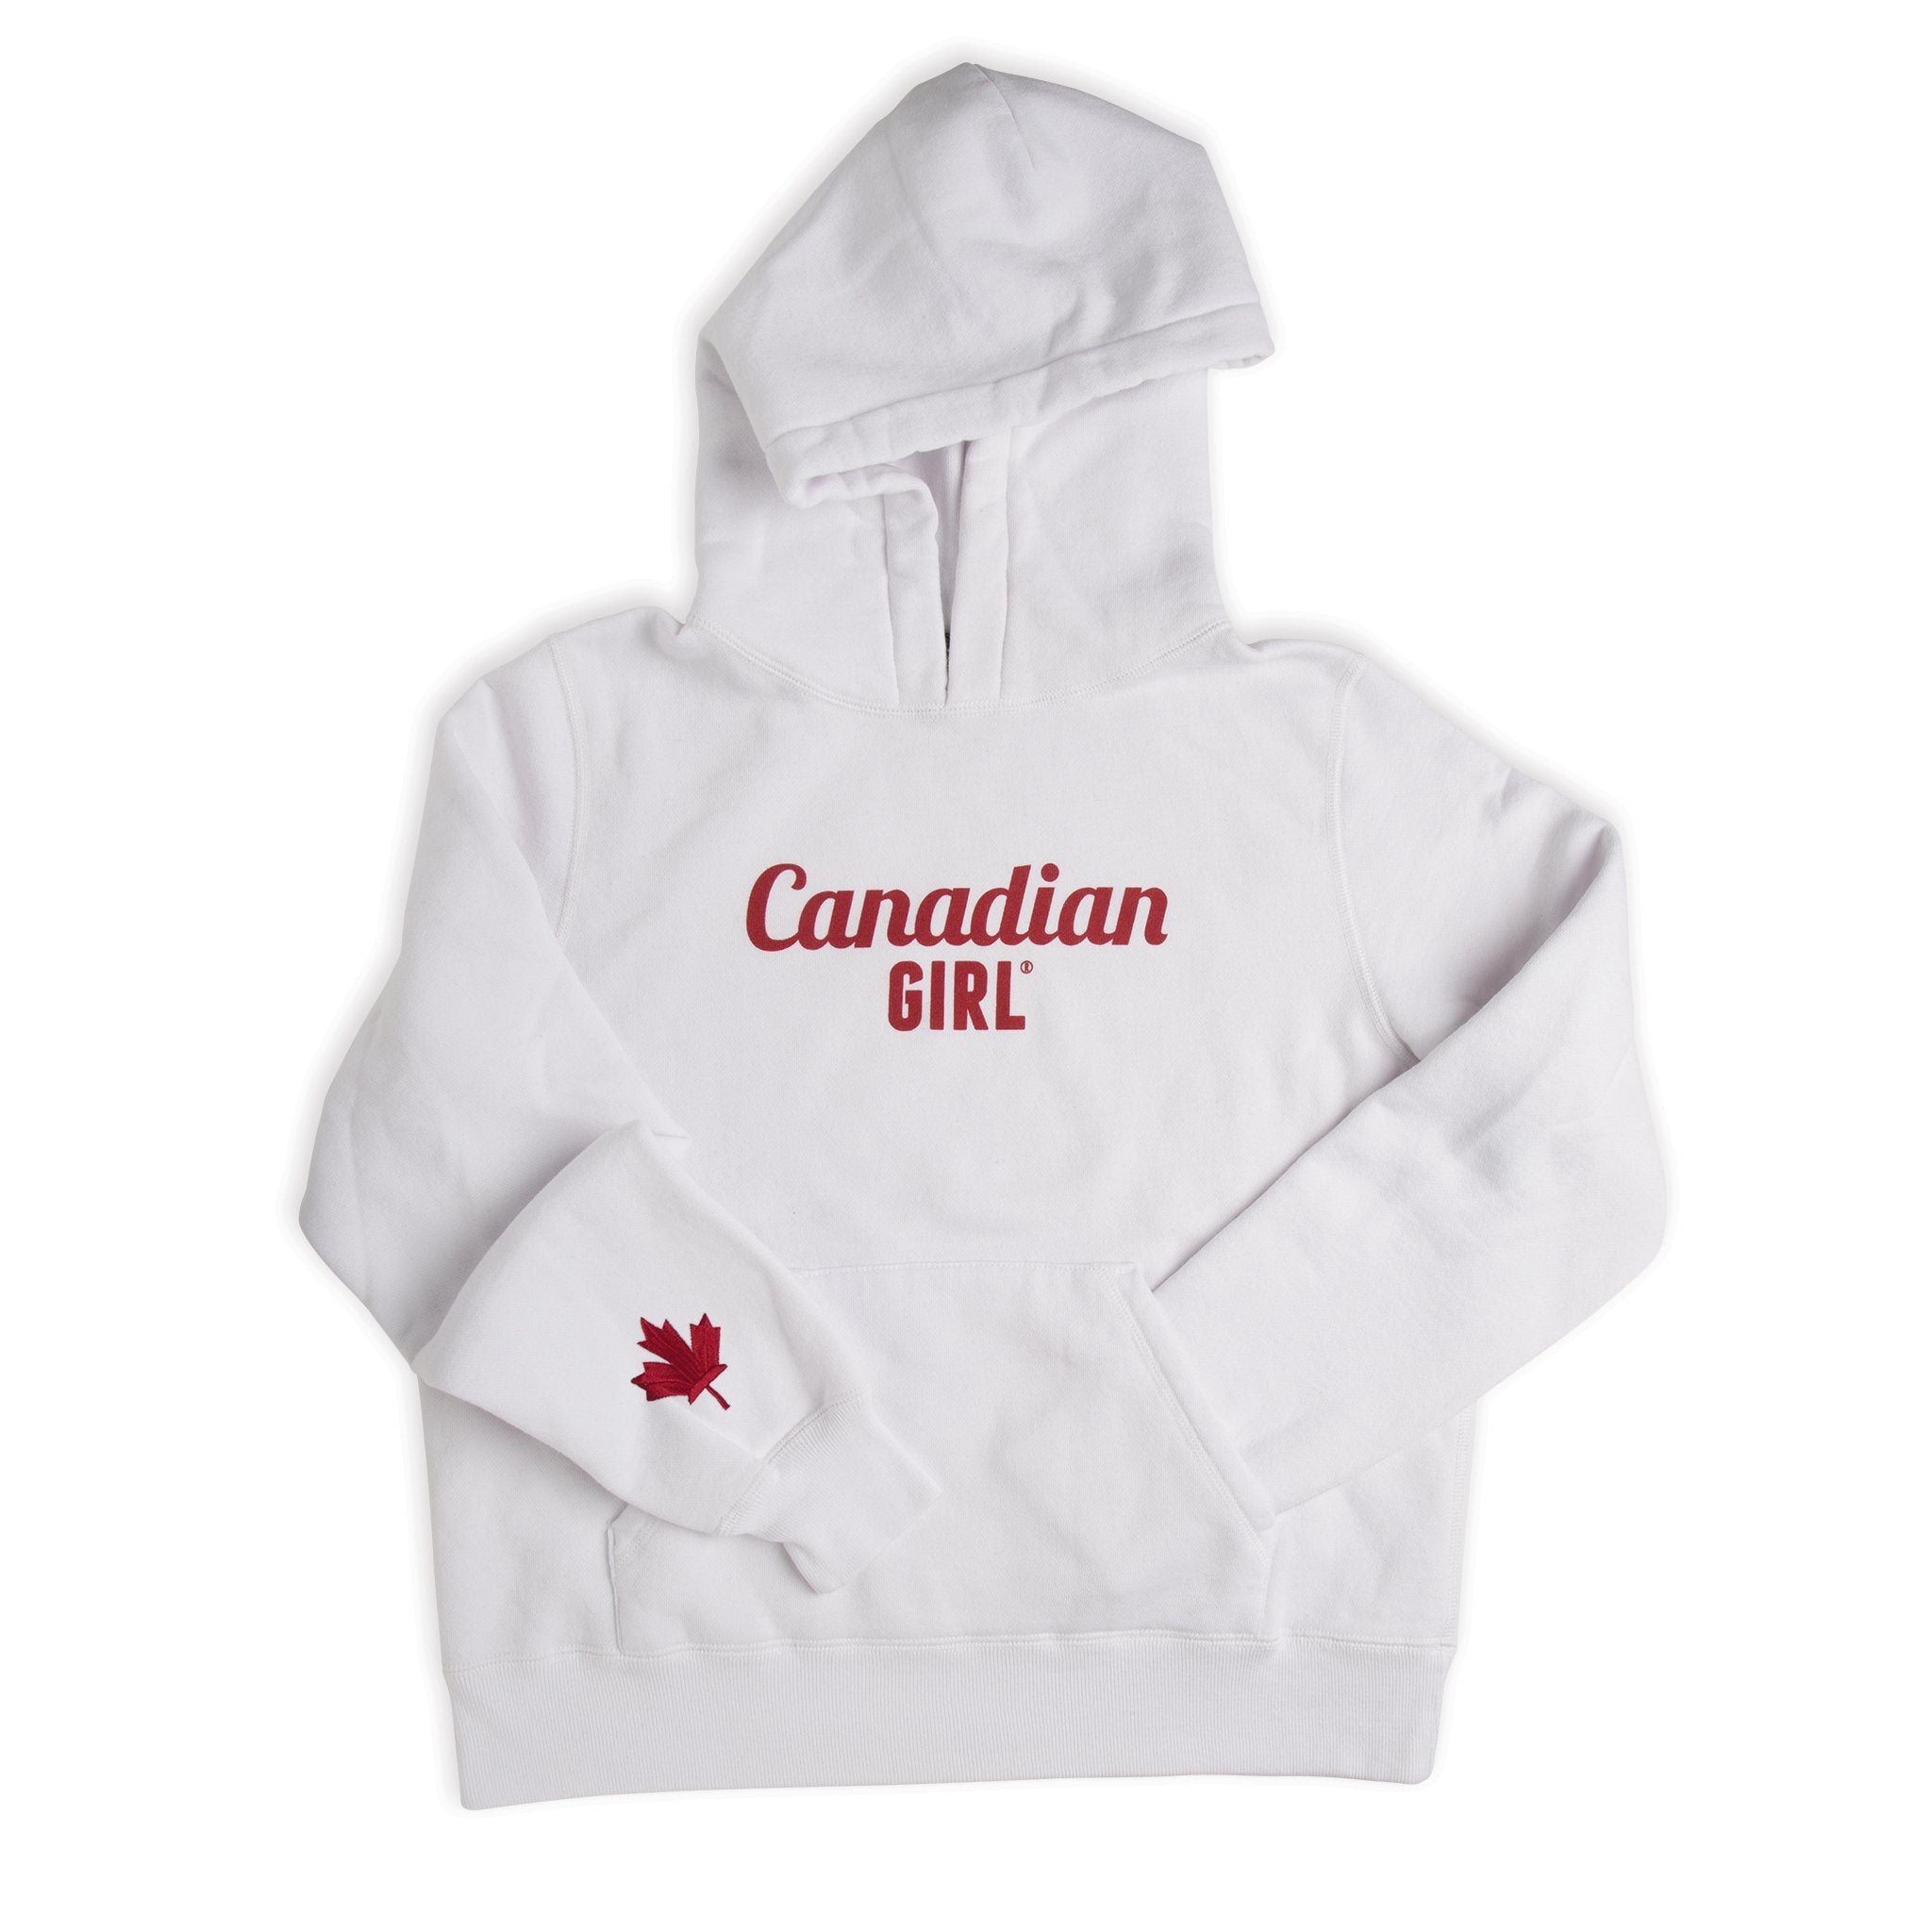 White Canadian Girl hoody in varying sizes for girls.